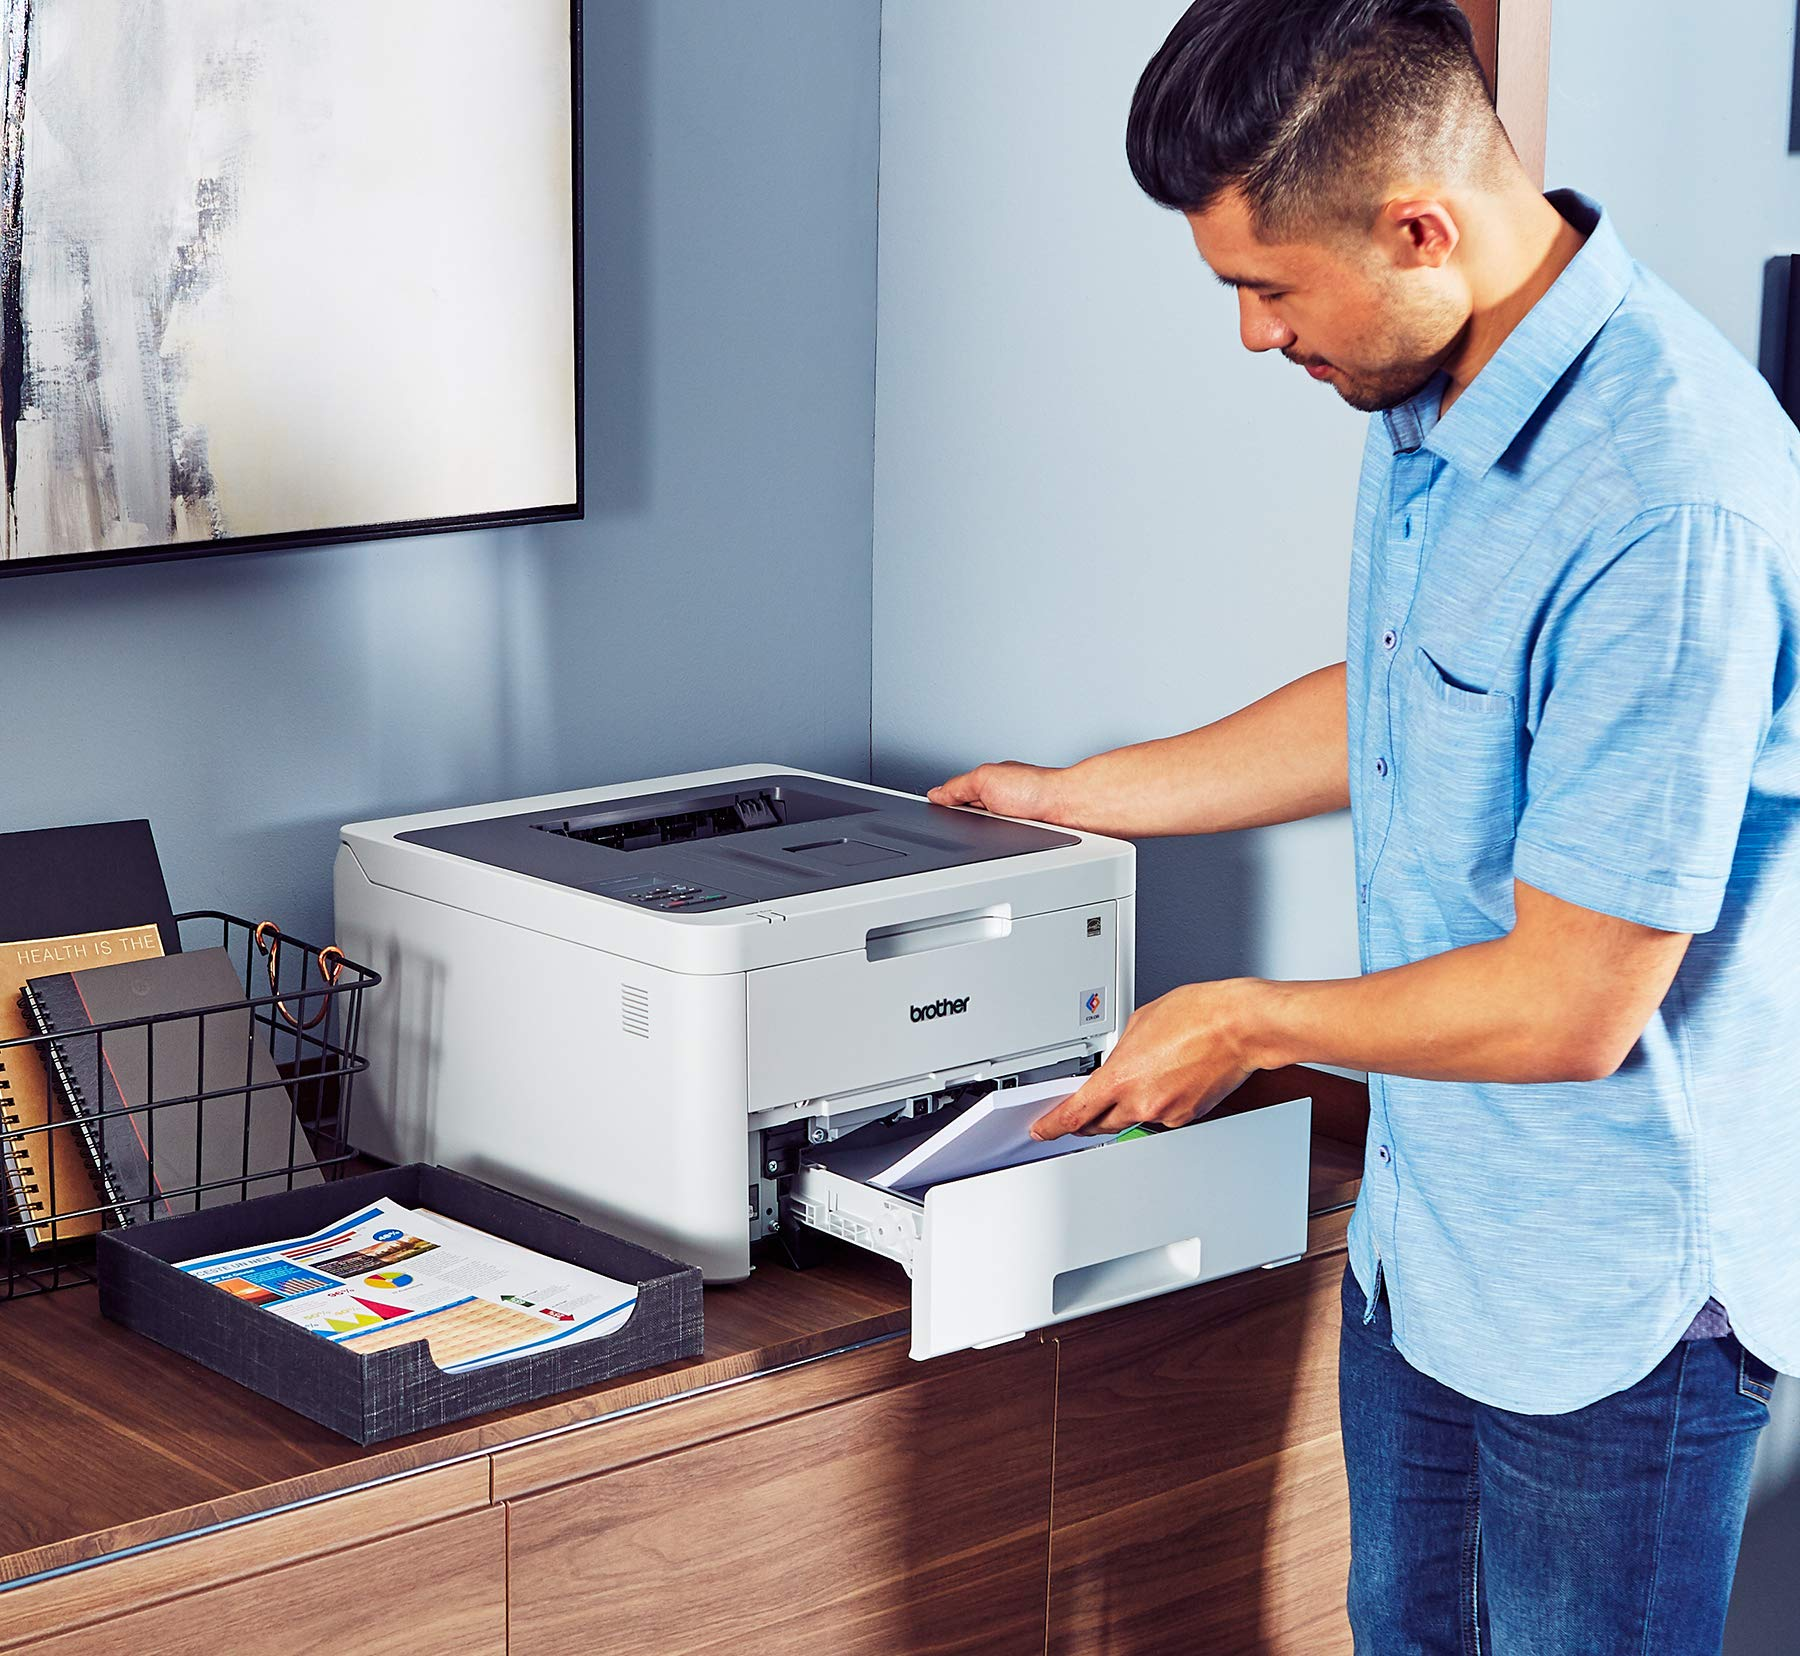 Brother HL-L3210CW Compact Digital Color Printer Providing Laser Printer Quality Results with Wireless, Amazon Dash Replenishment Enabled, White by Brother (Image #5)